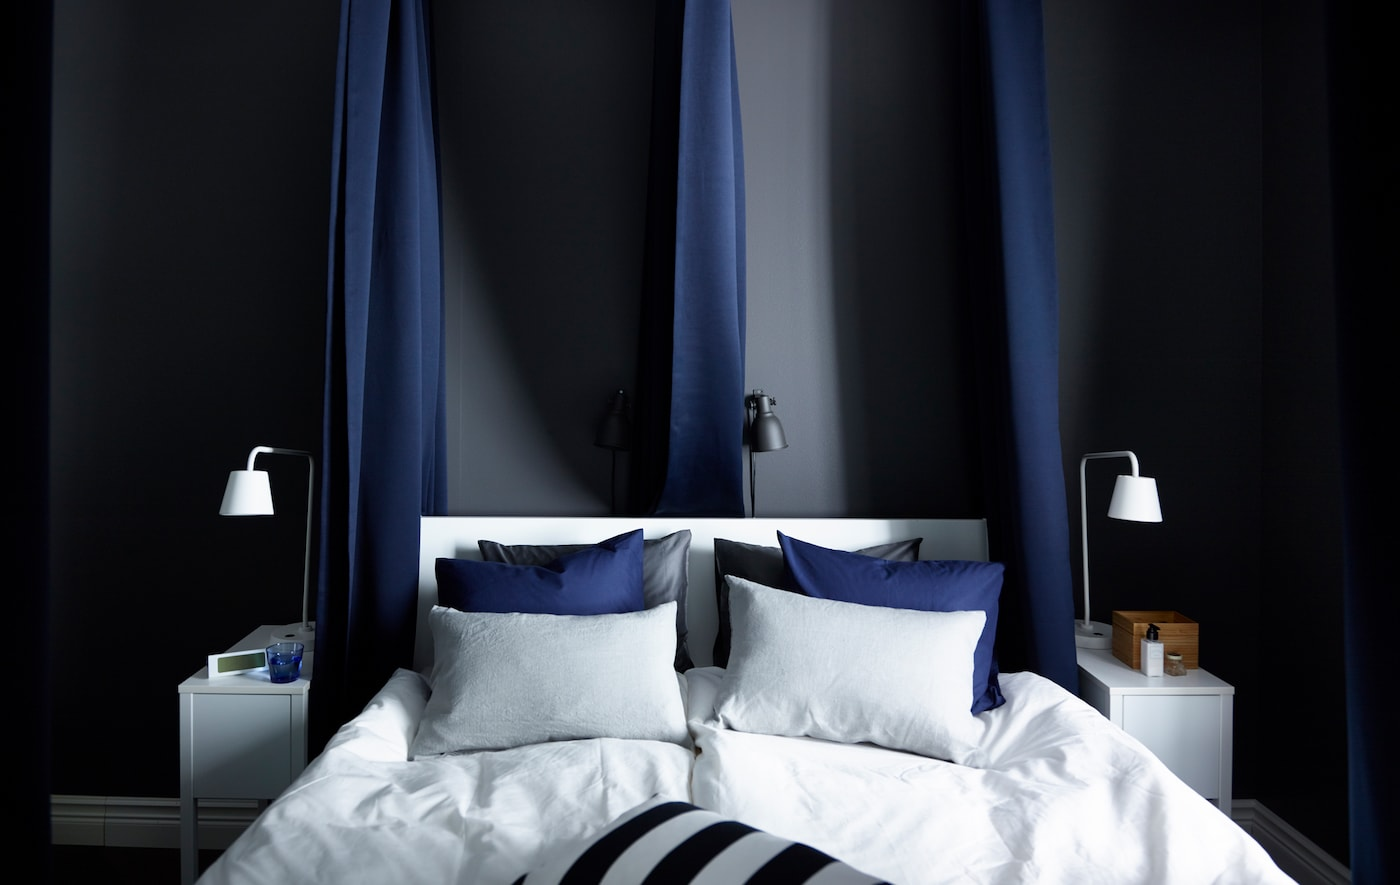 Dark blue curtains hang around the outside and in the middle of the bed to help block out sound and light.